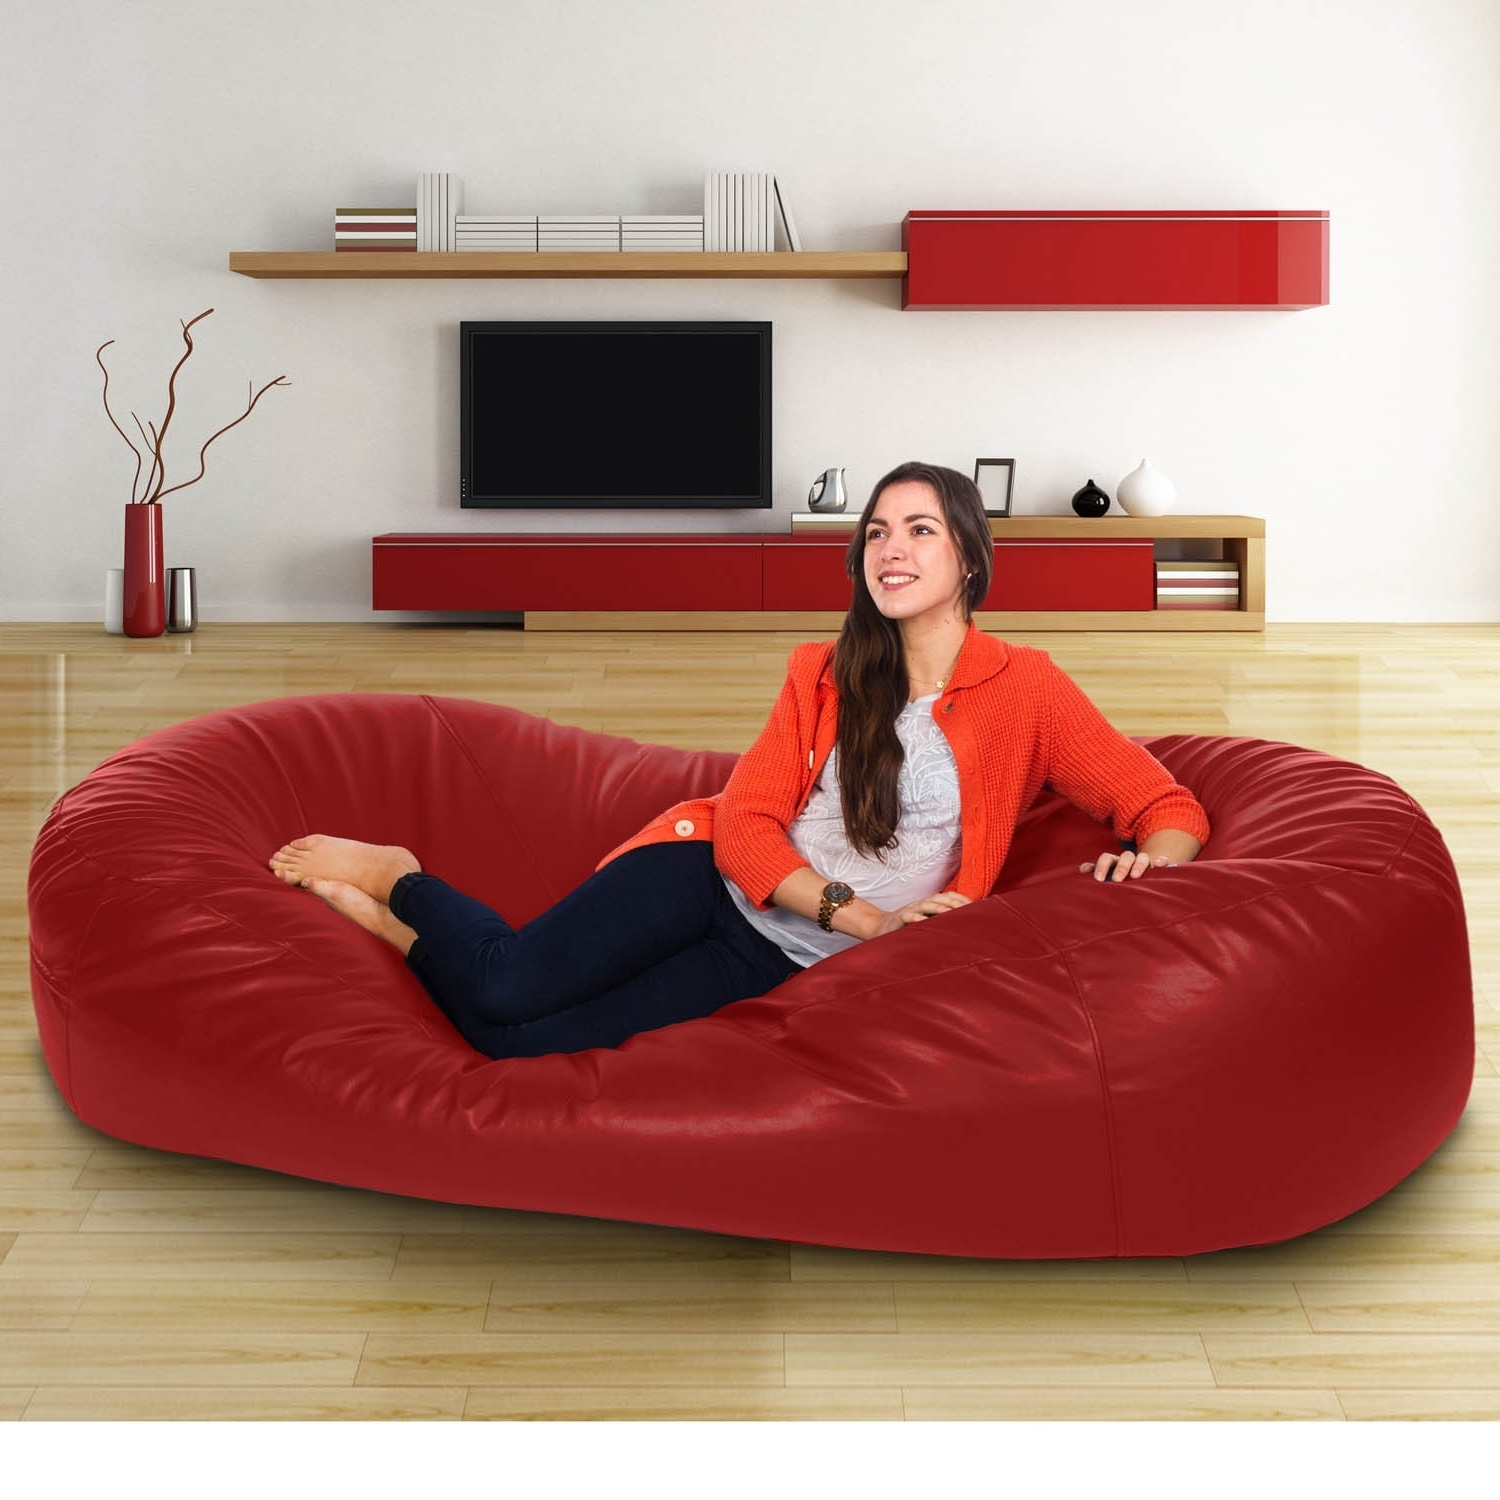 Latest Ideas To Clean Bean Bag Couch — Cabinets, Beds, Sofas And Pertaining To Bean Bag Sofas (View 18 of 20)